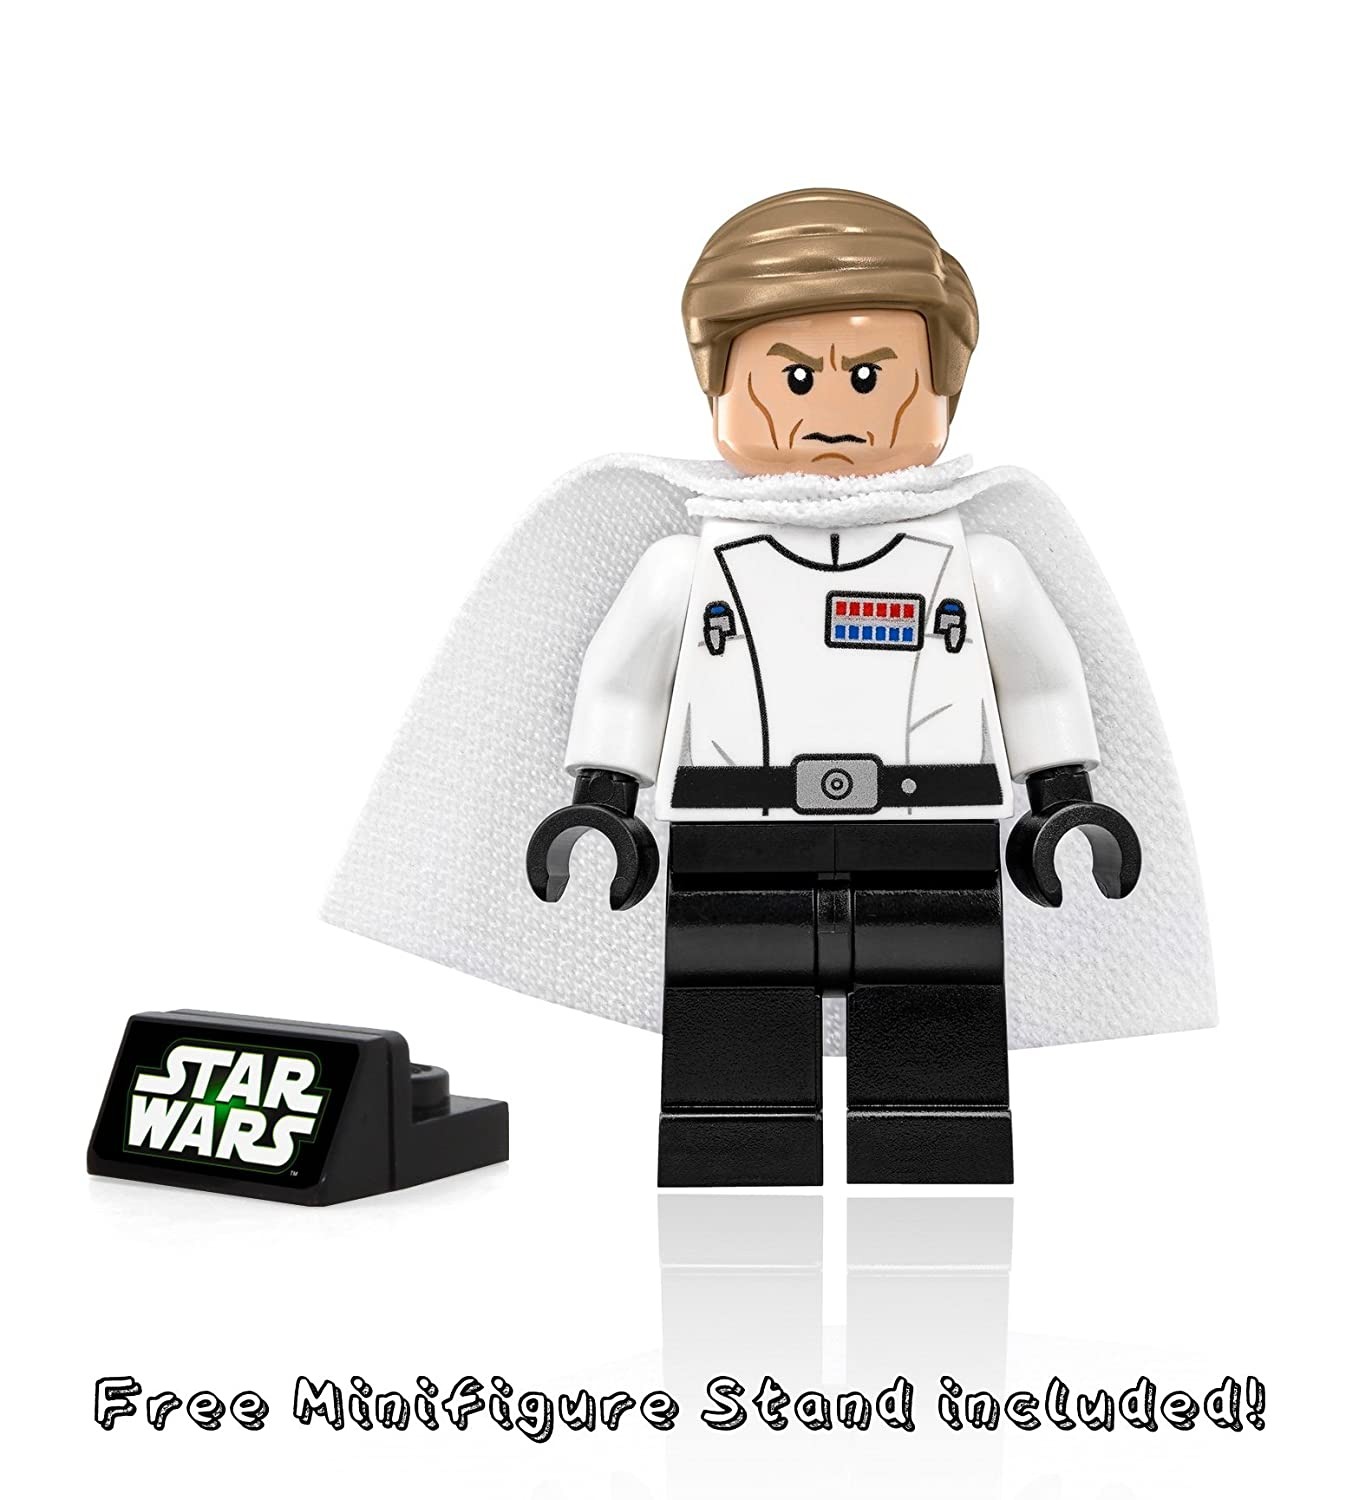 LEGO Star Wars Director Krennic Minifigure with Cape and Blaster Pistol 2016 Rogue One